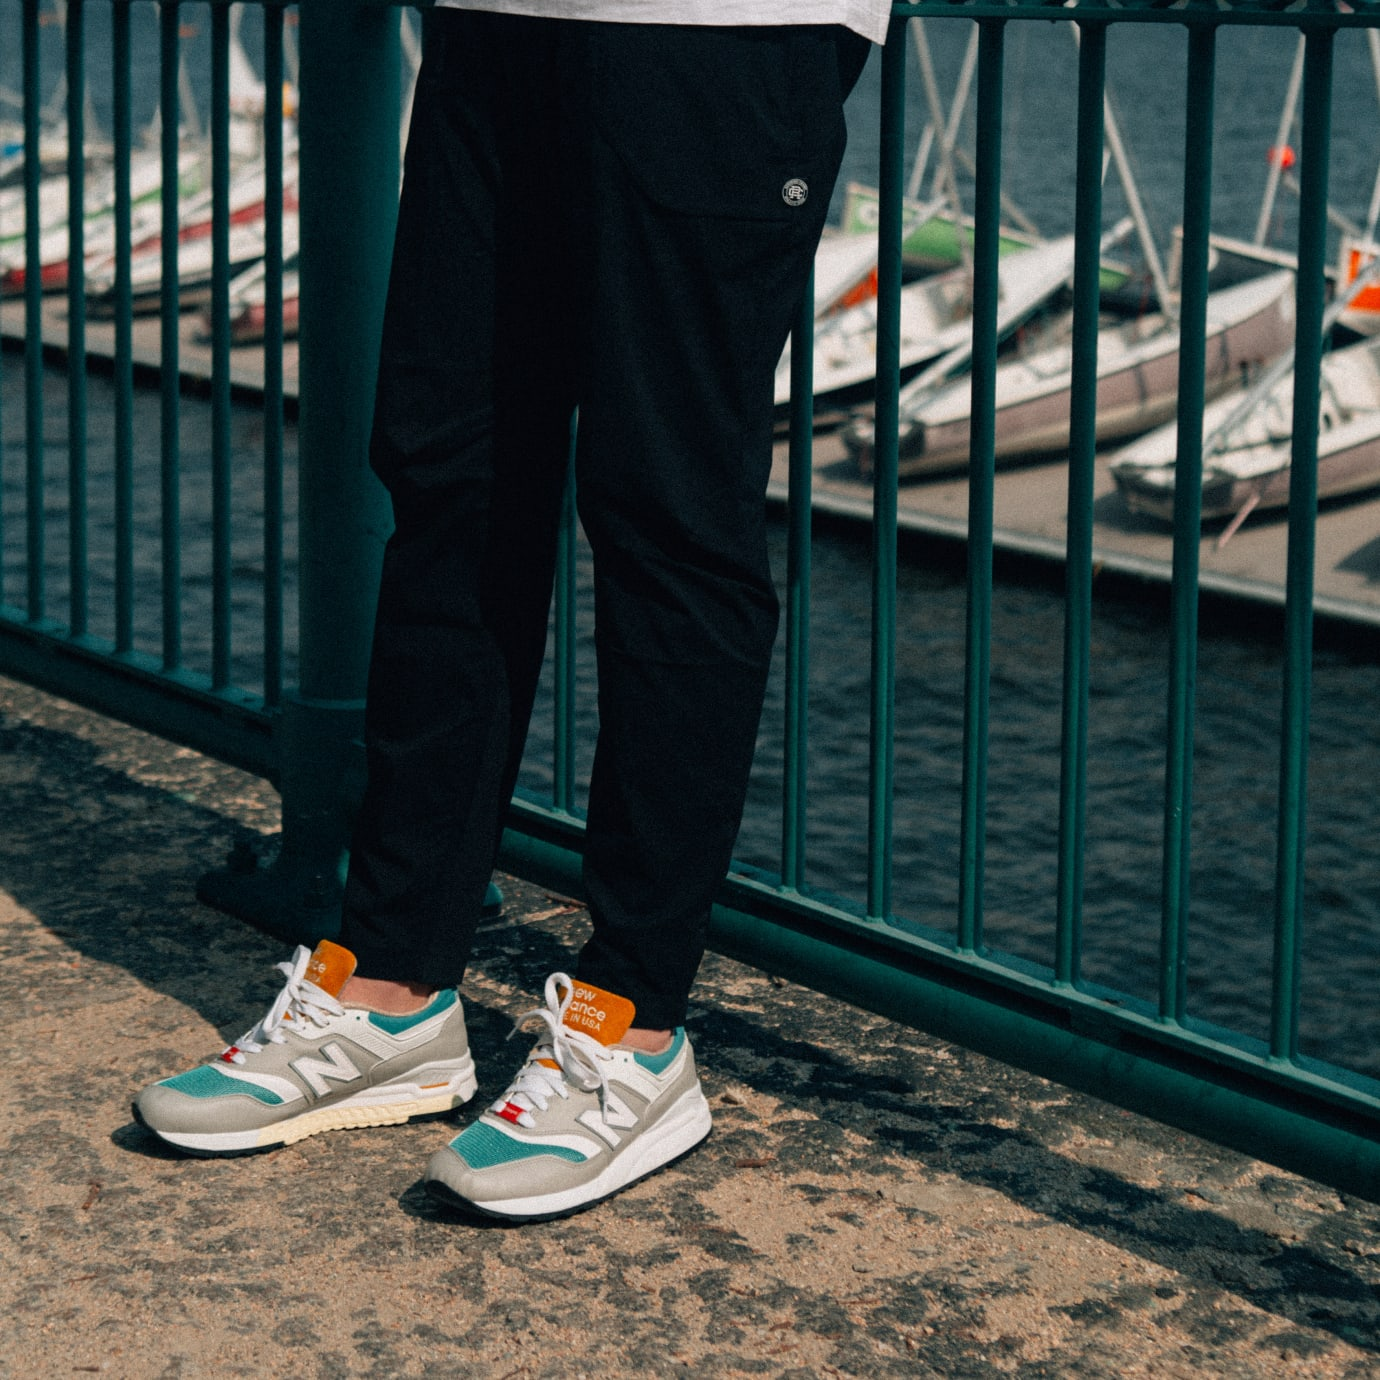 CNCPTS x New Balance 997.5 'Esplanade' (On Foot)